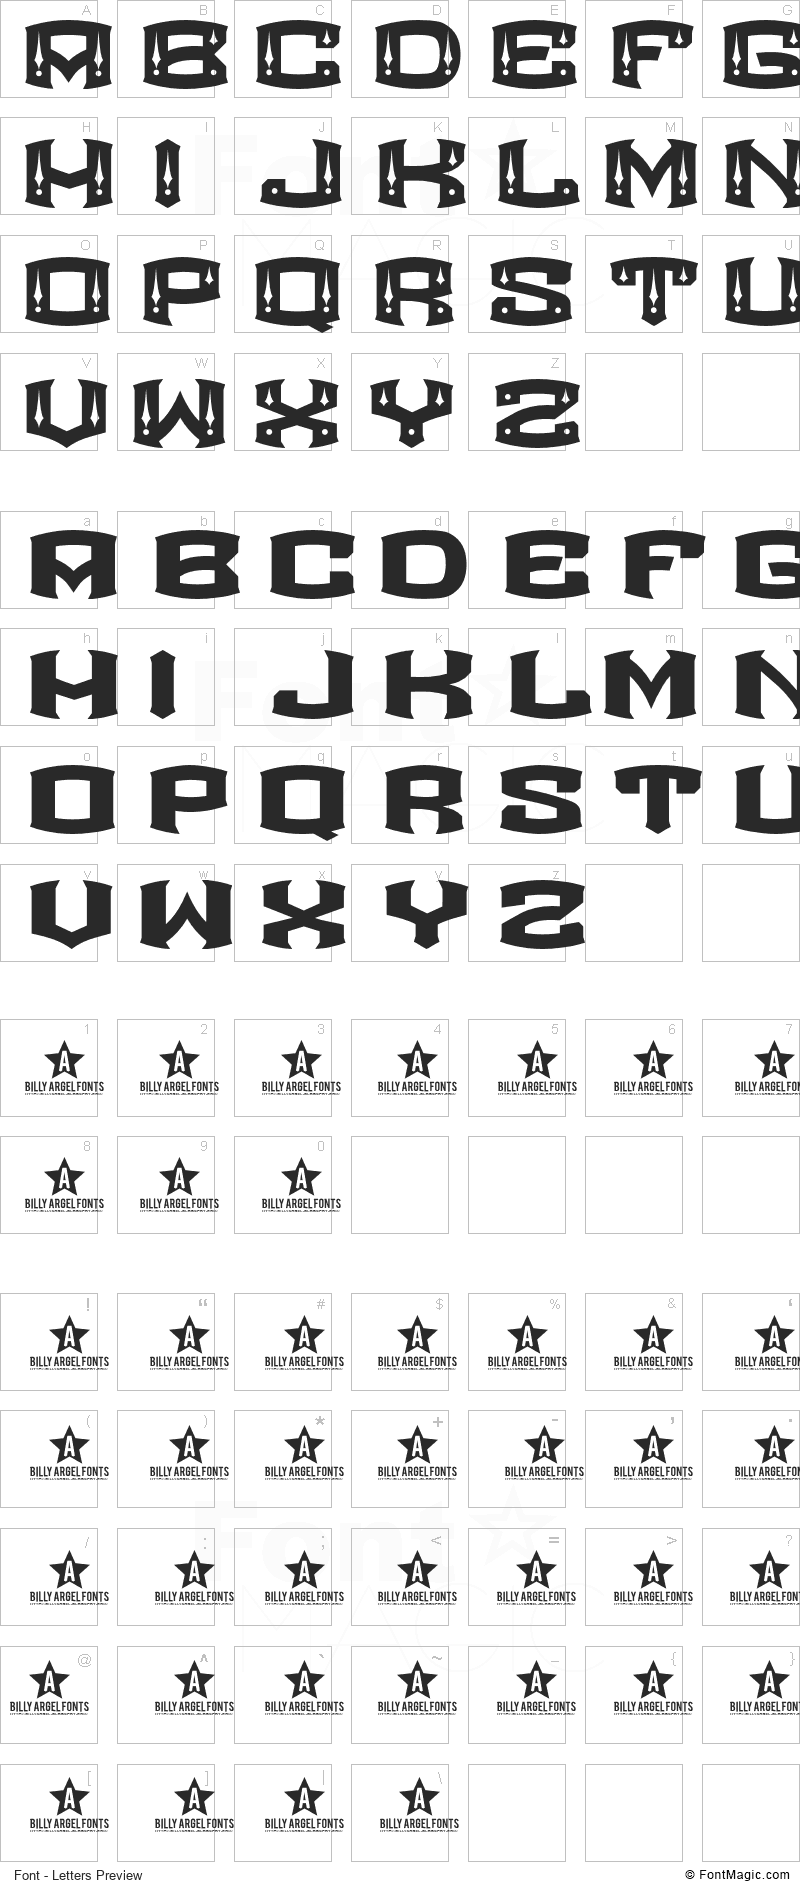 Rocketair Font - All Latters Preview Chart